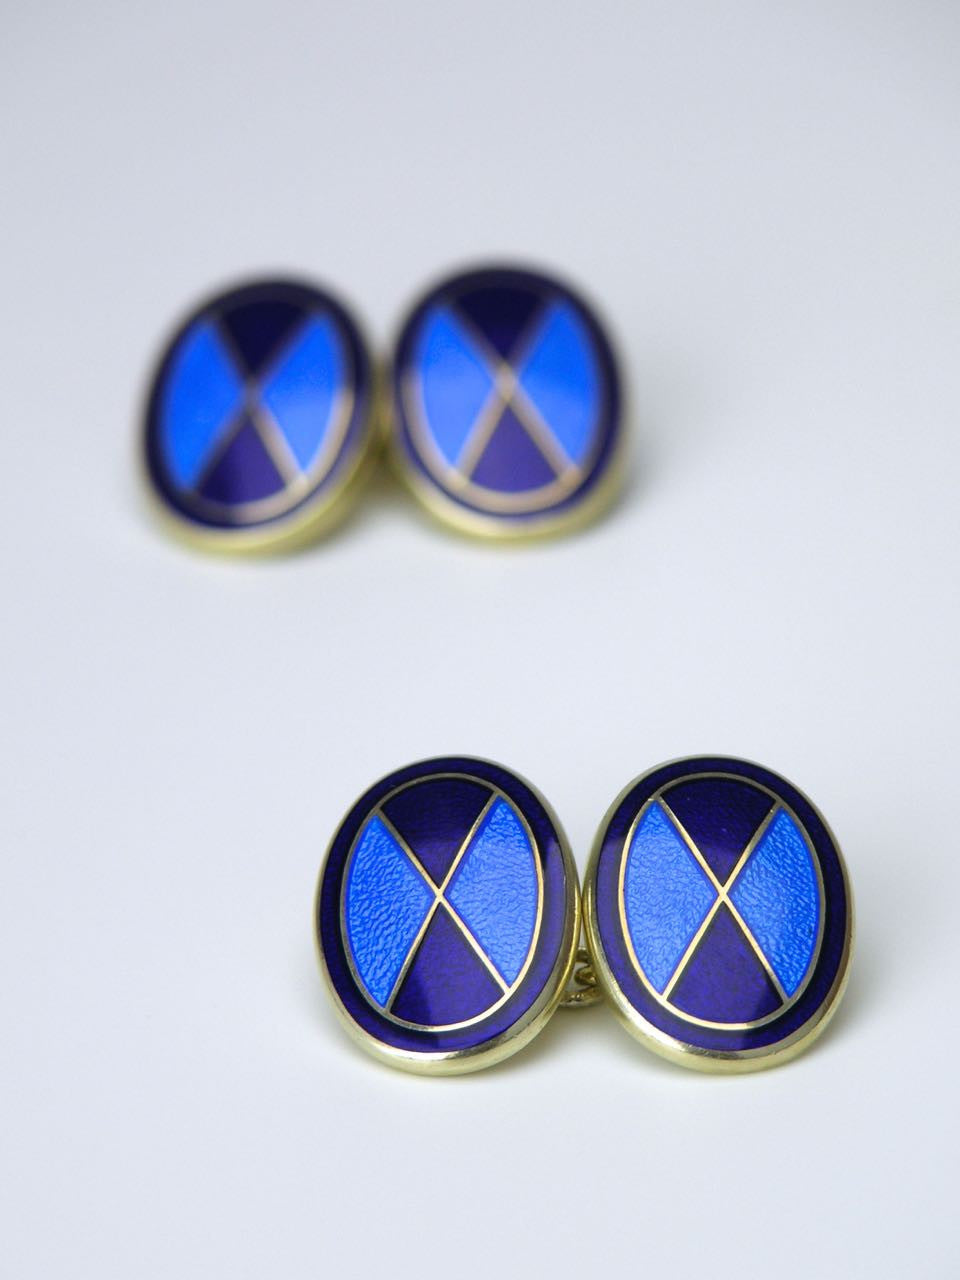 Oval silver bright blue and navy enamel cufflinks